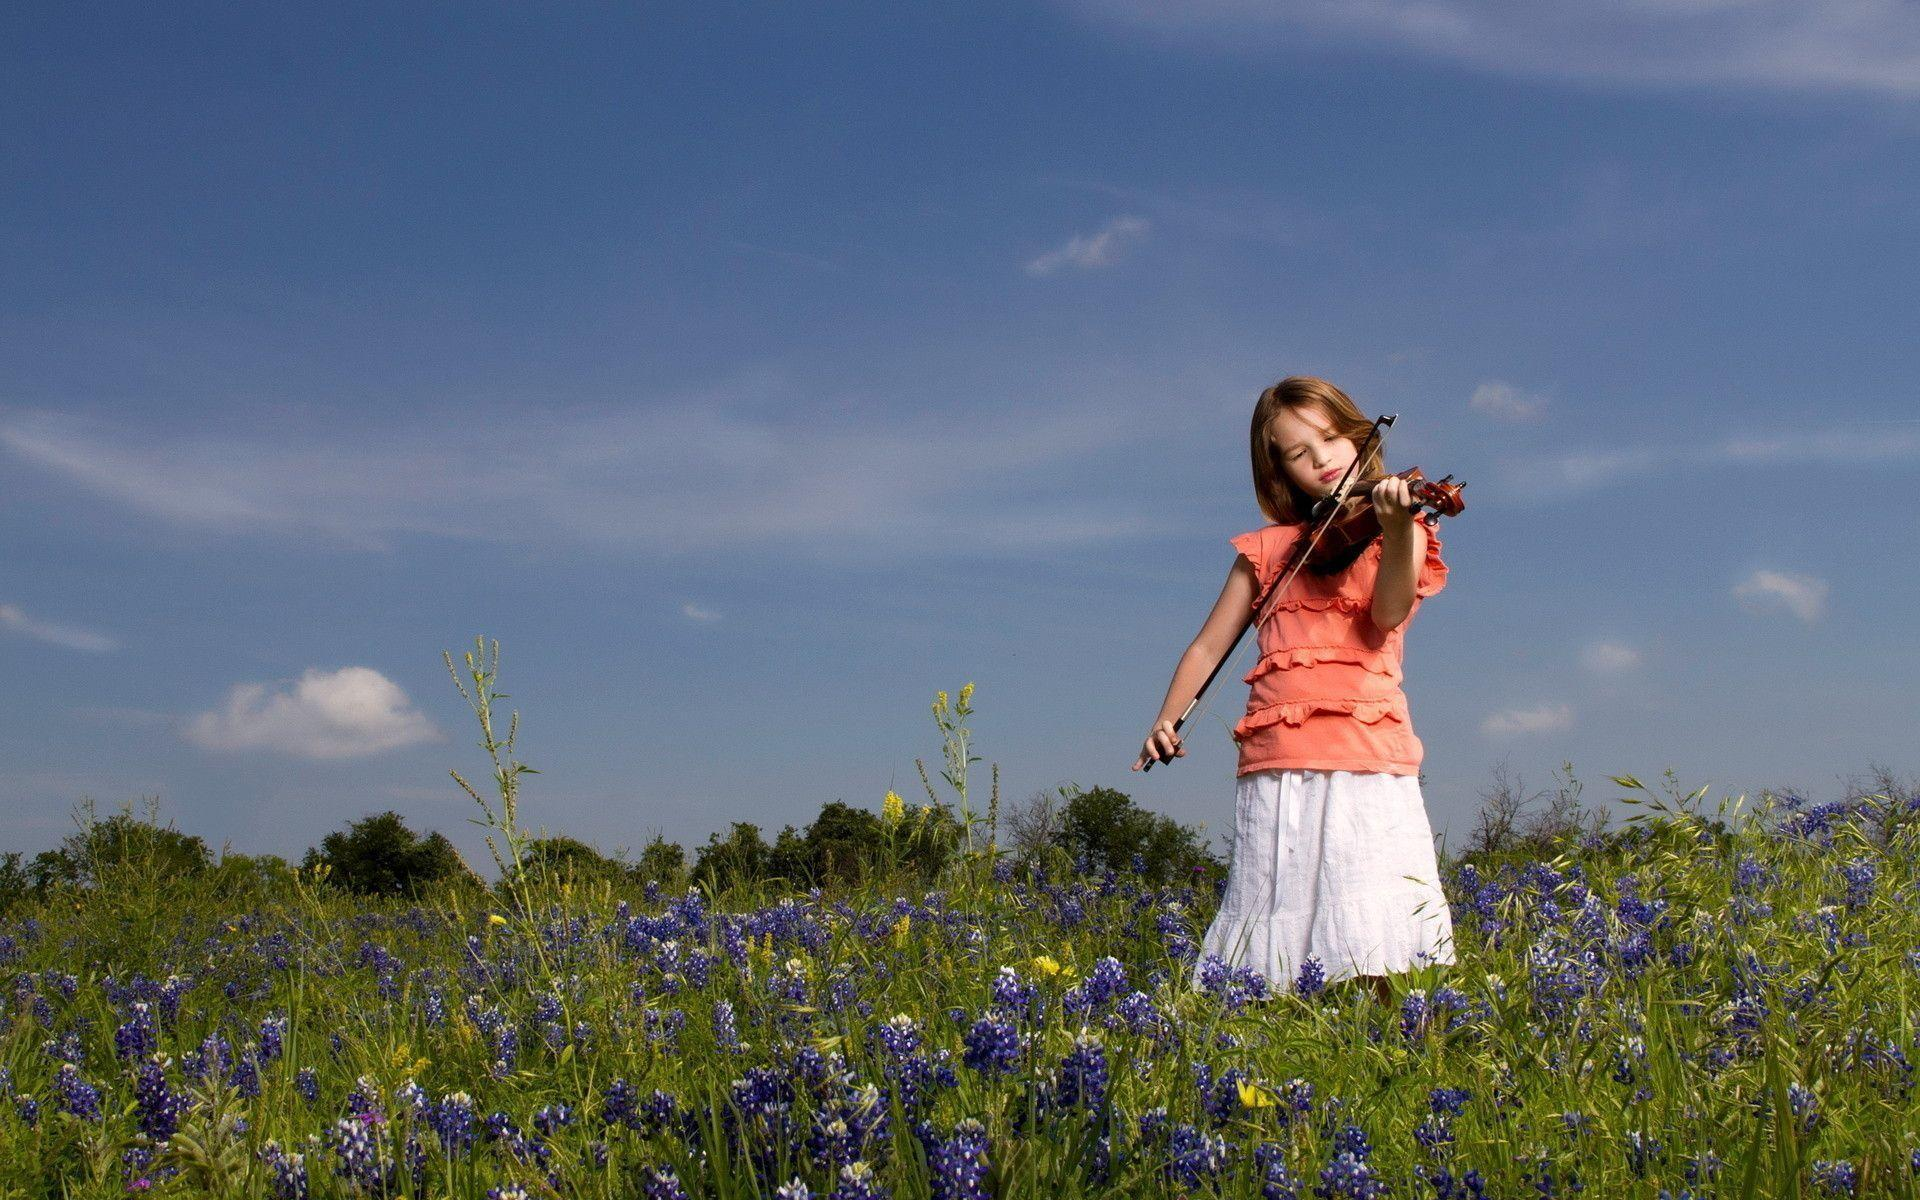 66 Violin Wallpapers | Violin Backgrounds Page 3